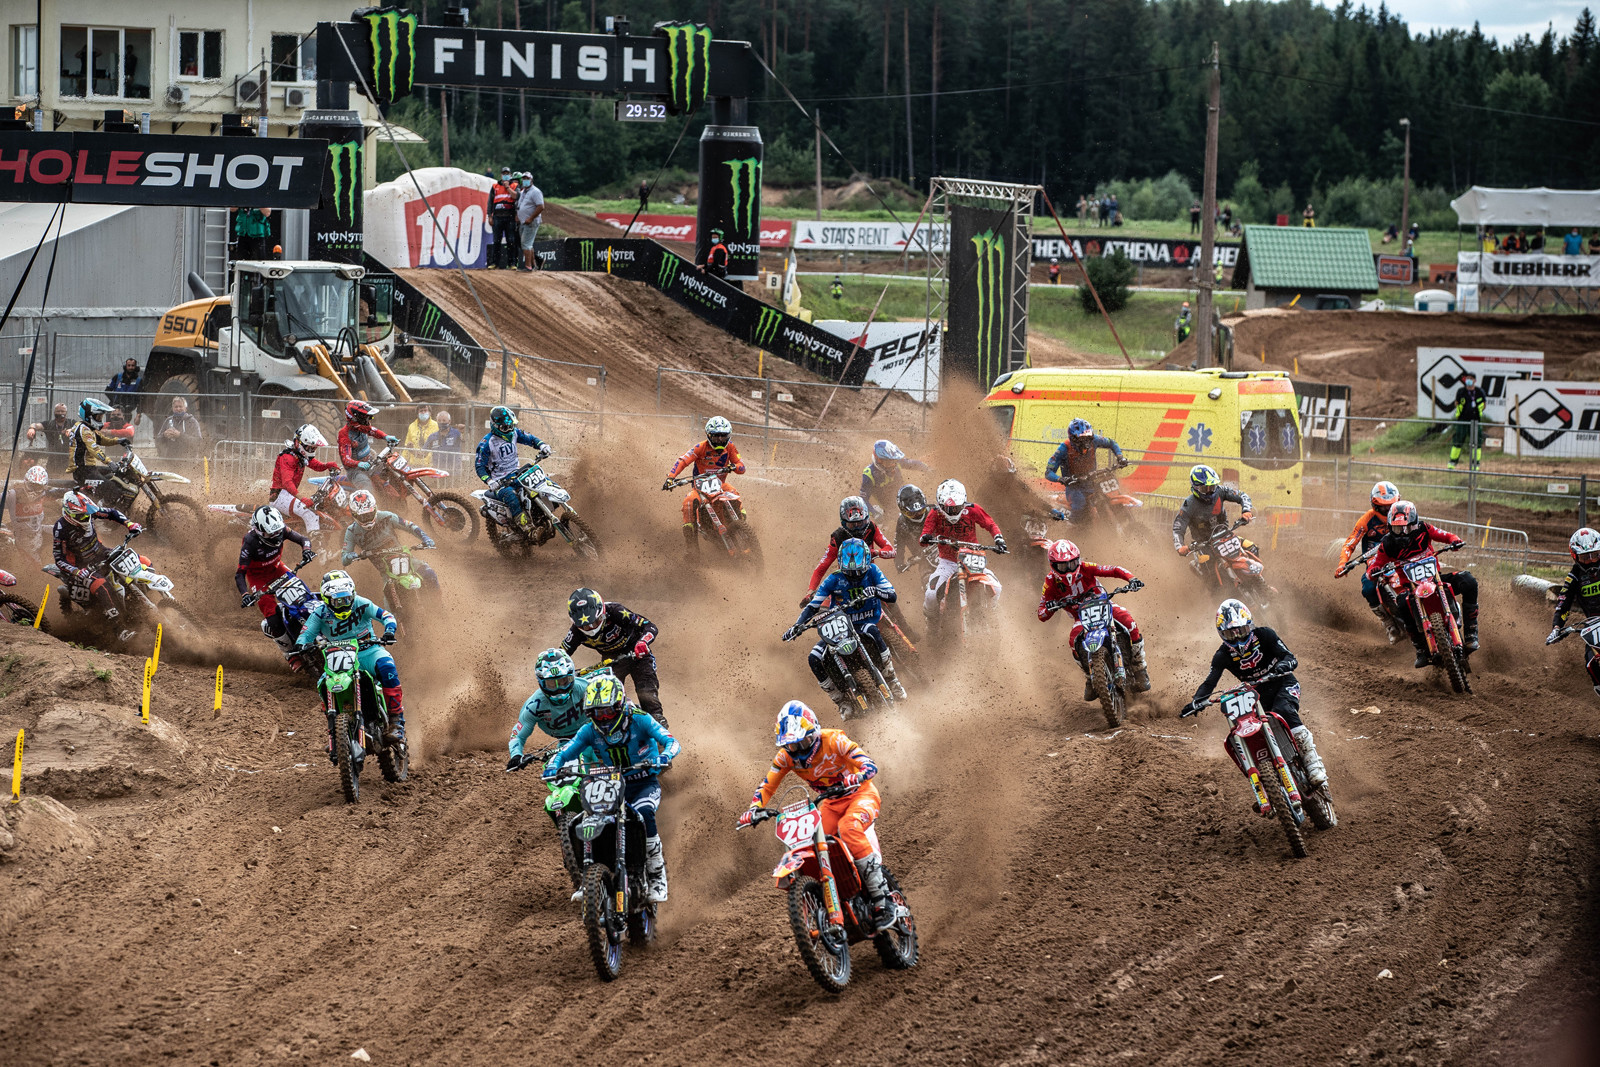 Here we are back at the same track as Sunday for round four of the 2020 MXGP series. We'll also stay in Latvia at the same track for the next round, this Sunday.